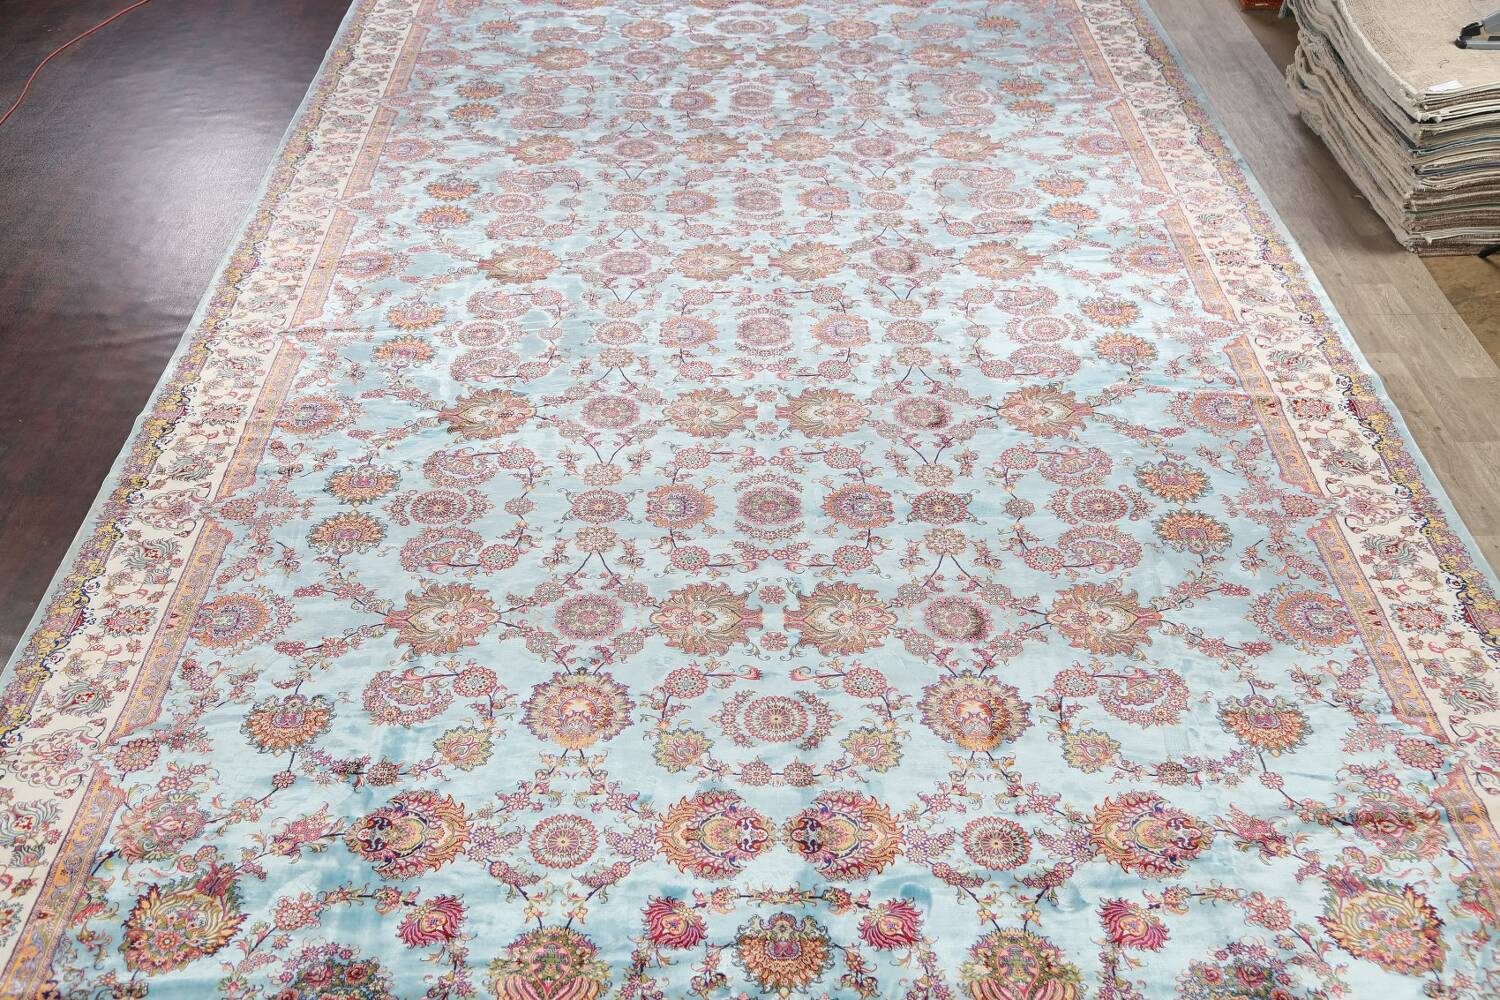 All-Over Floral Silk Large Tabriz Persian Area Rug 13x27 image 3